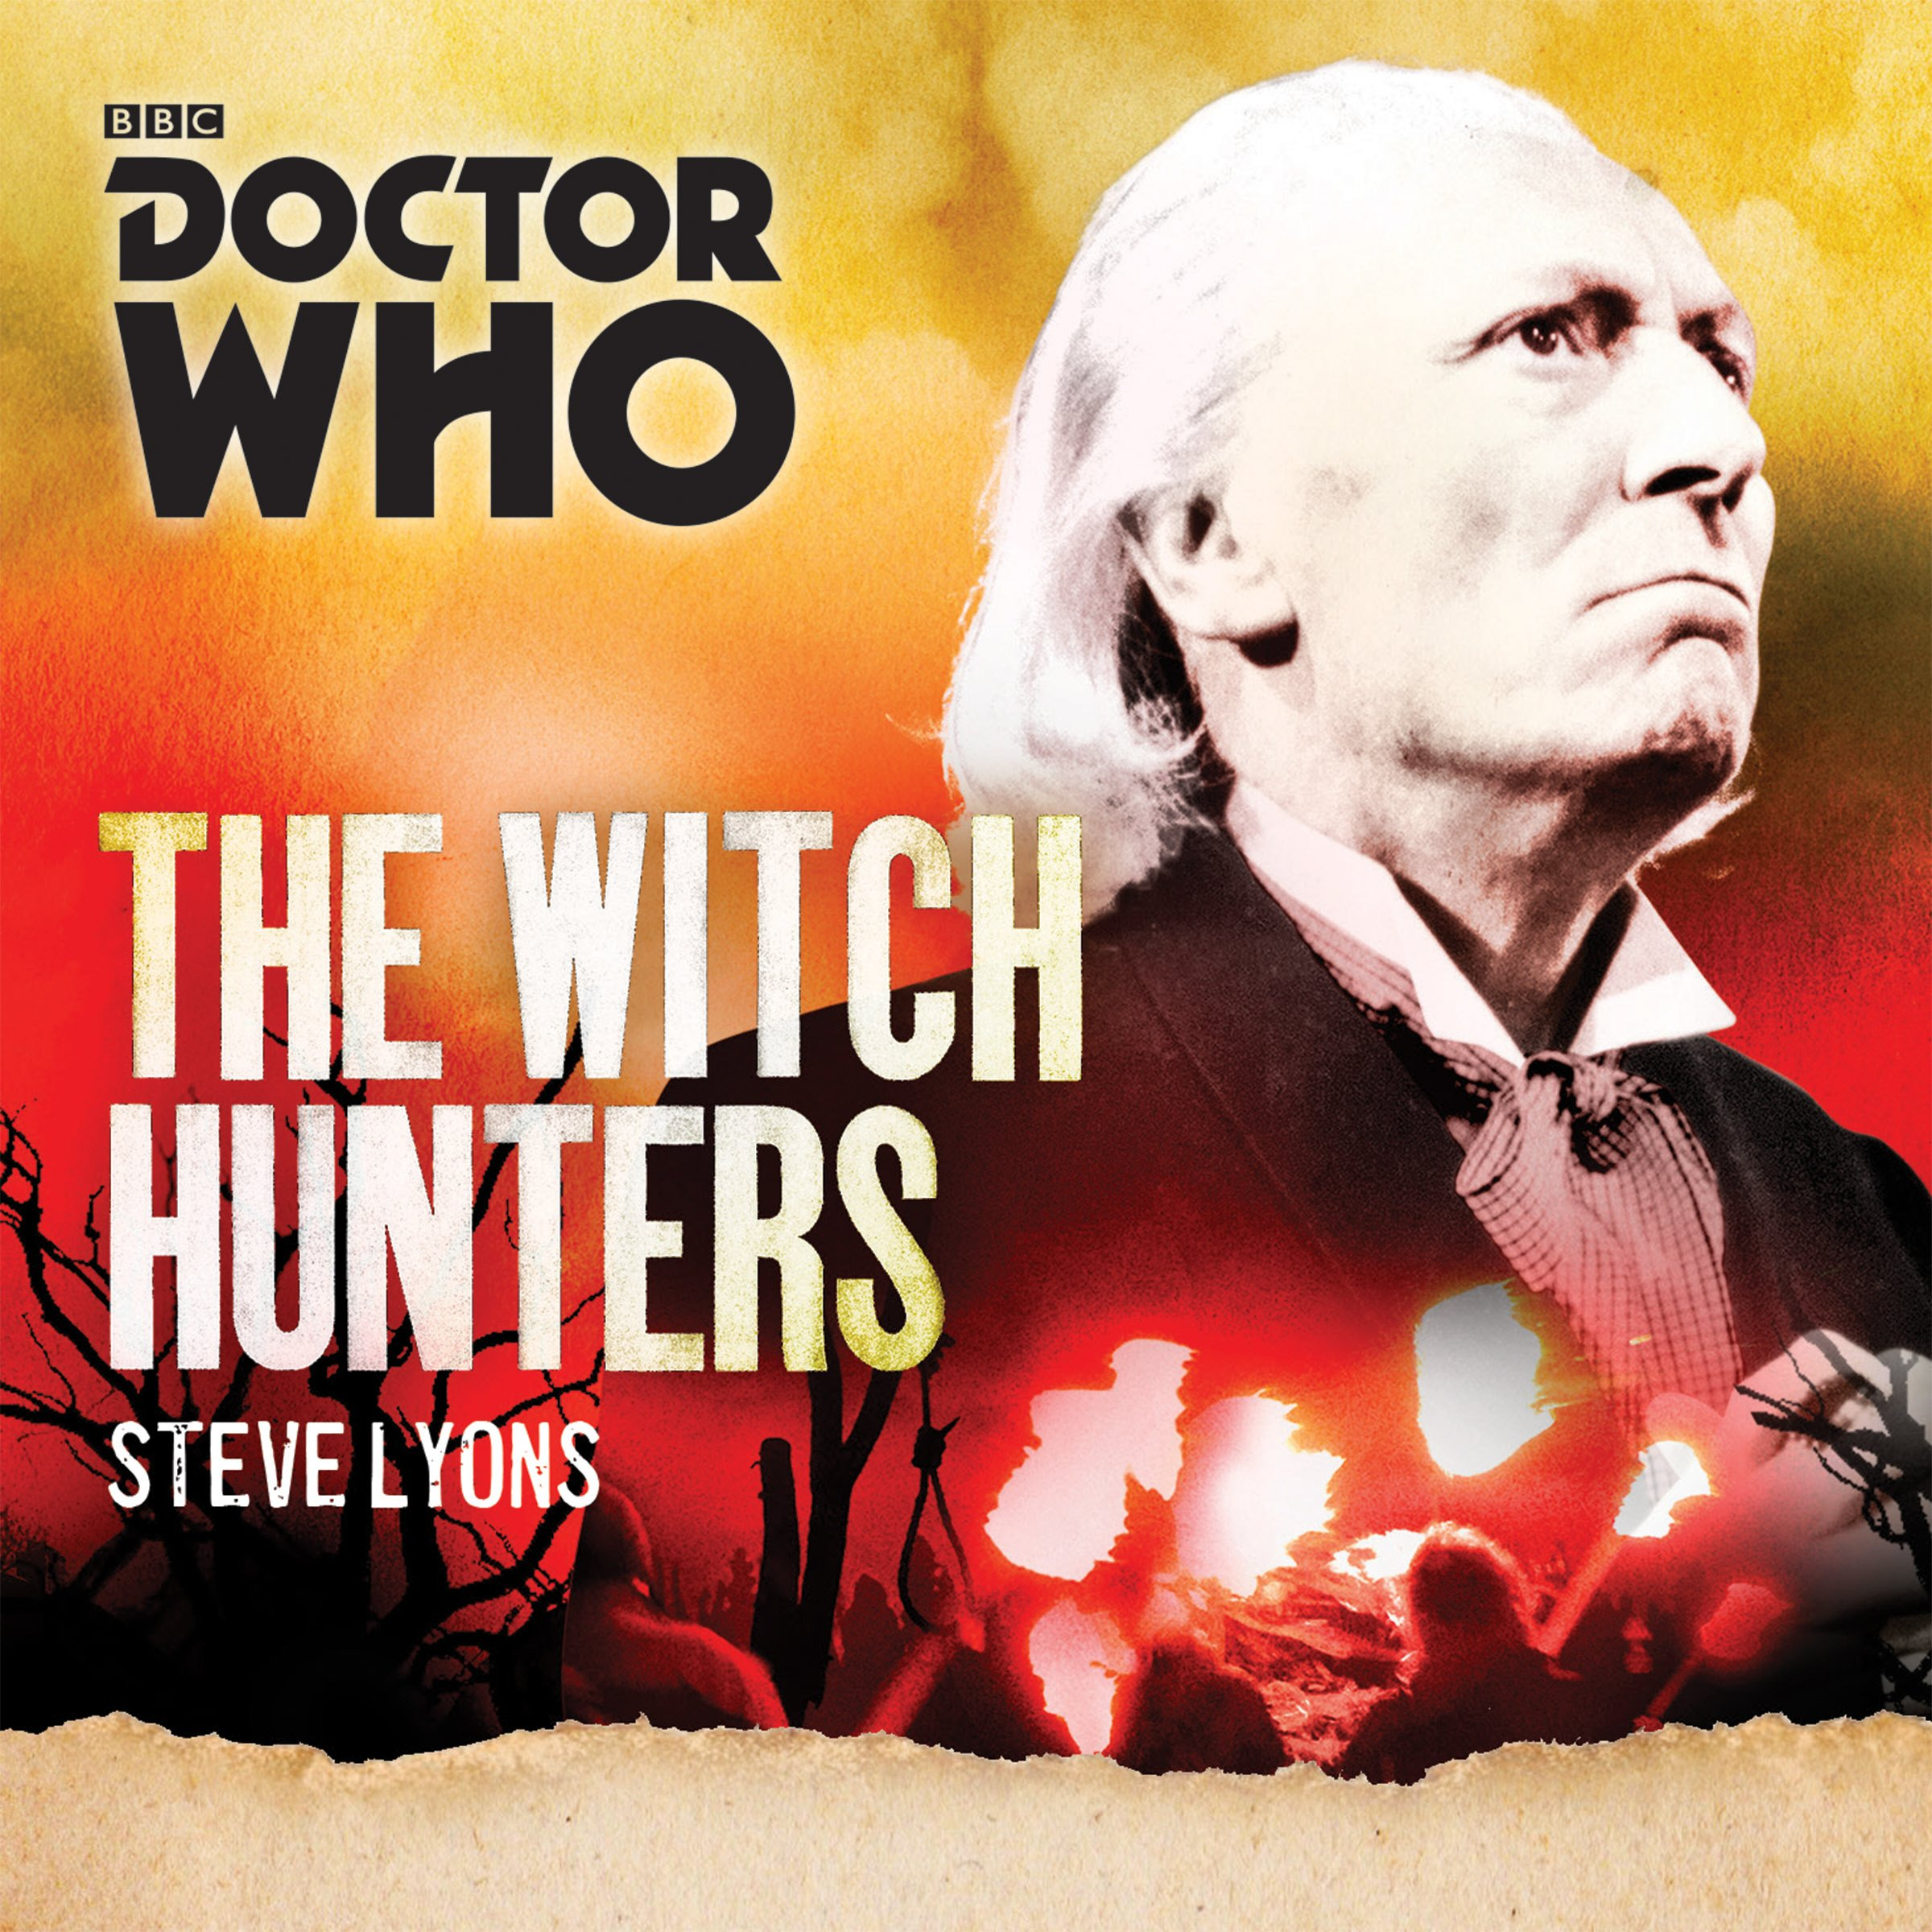 Past Doctor Adventures [09] The Witch Hunters - Steve Lyons